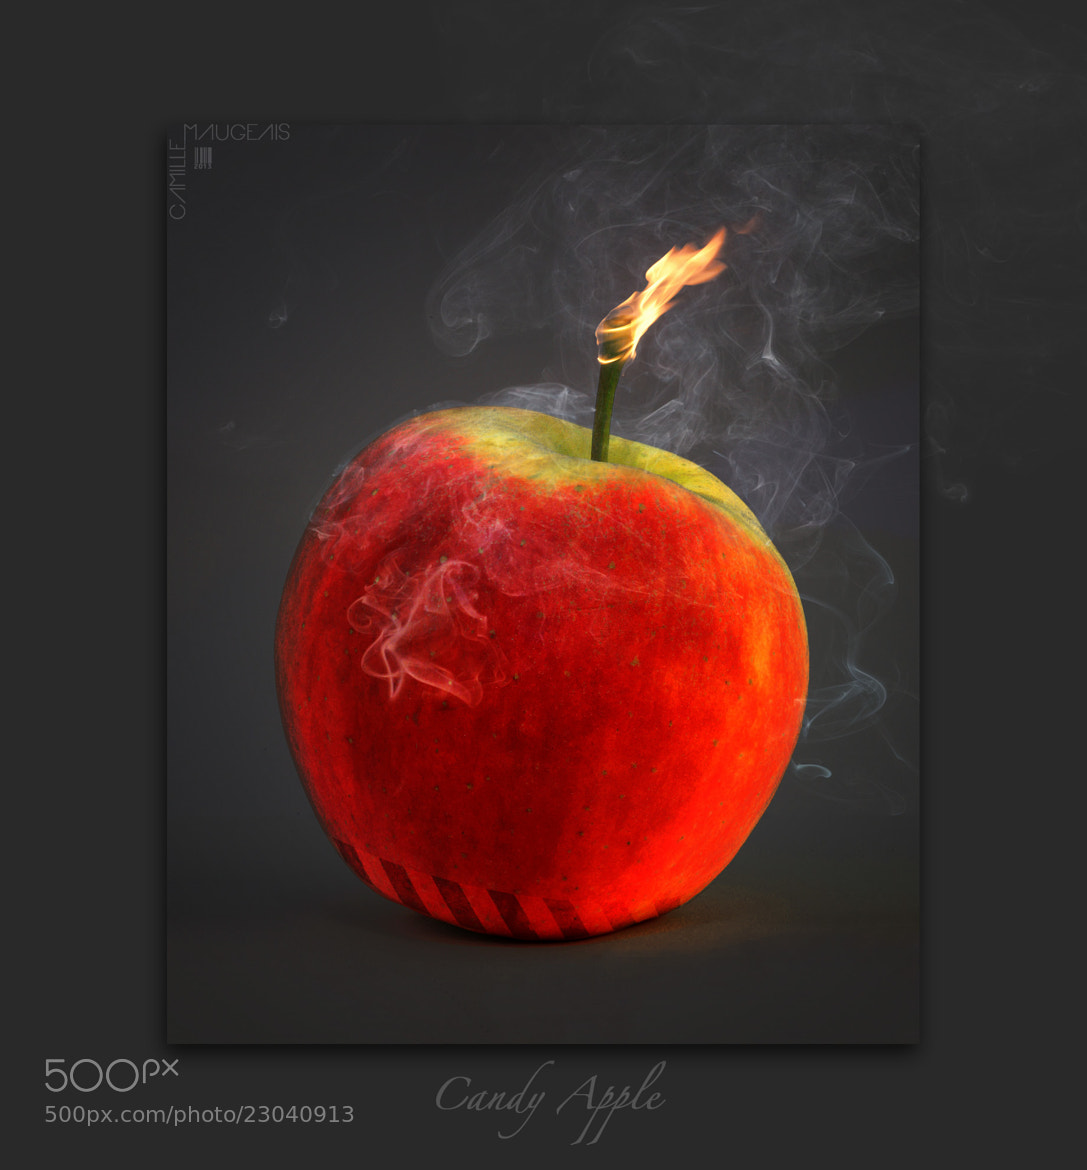 Photograph Candy Apple by Camille Maugeais on 500px